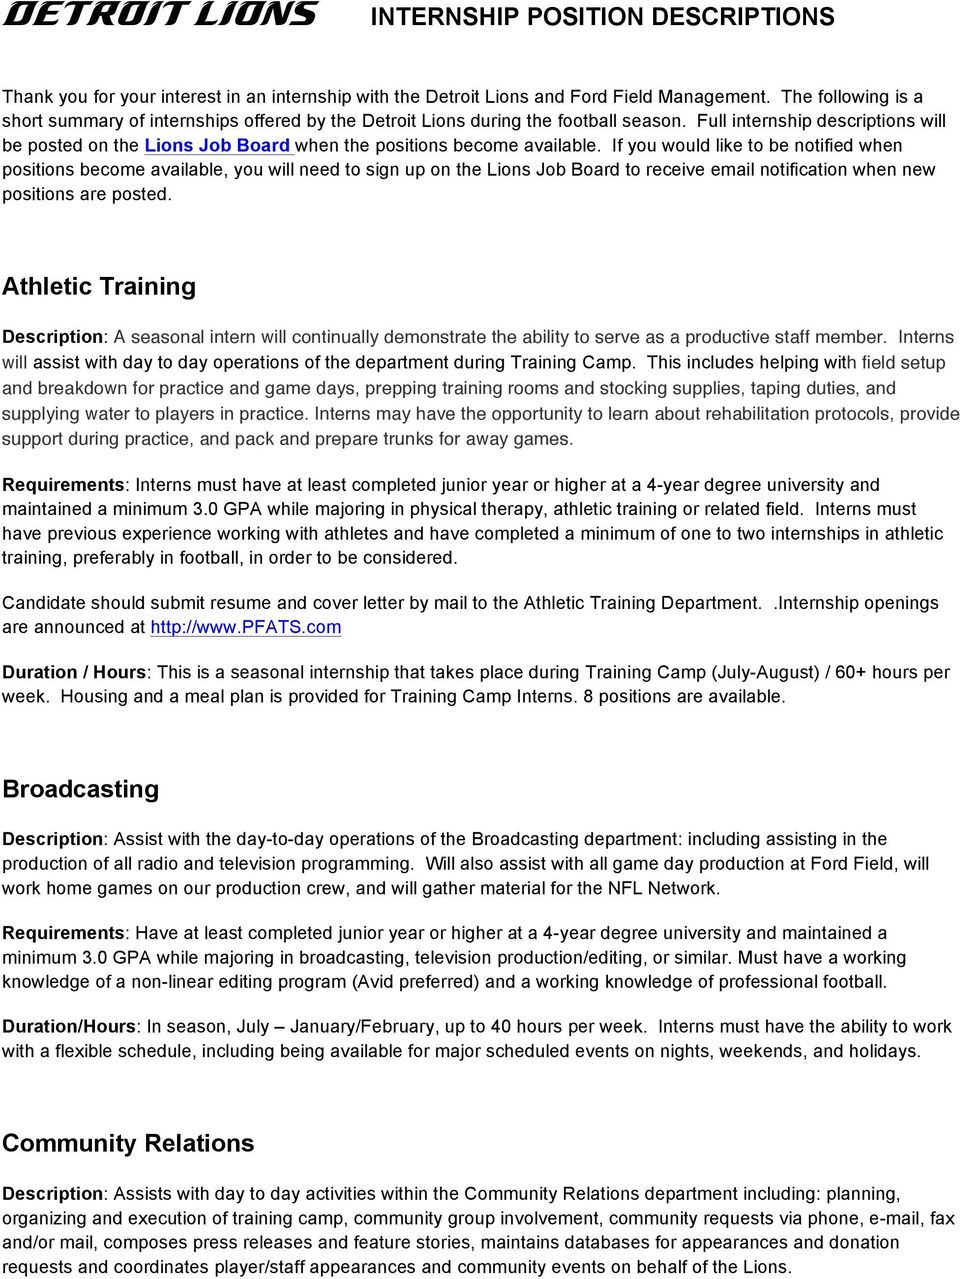 DETROIT LIONS INTERNSHIP POSITION DESCRIPTIONS. Athletic ...